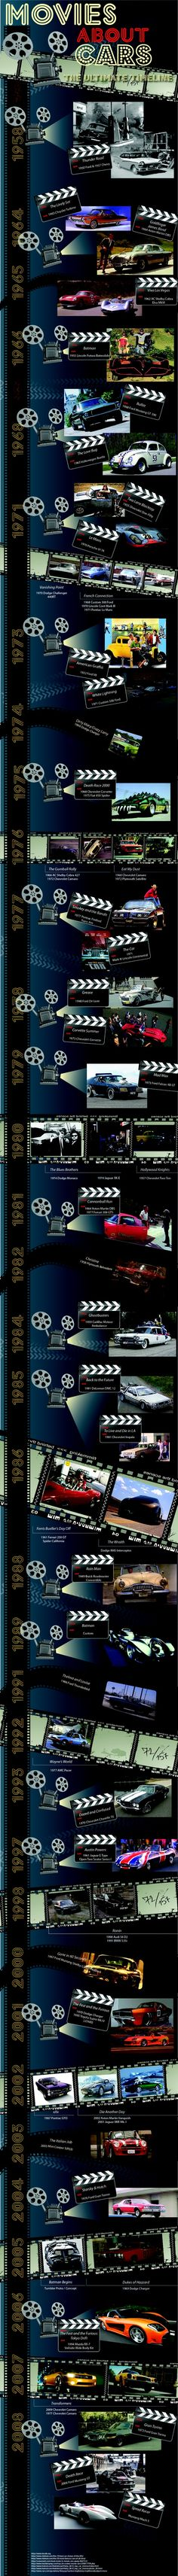 21 best Car stuff images on Pinterest   Info graphics, Infographic ...